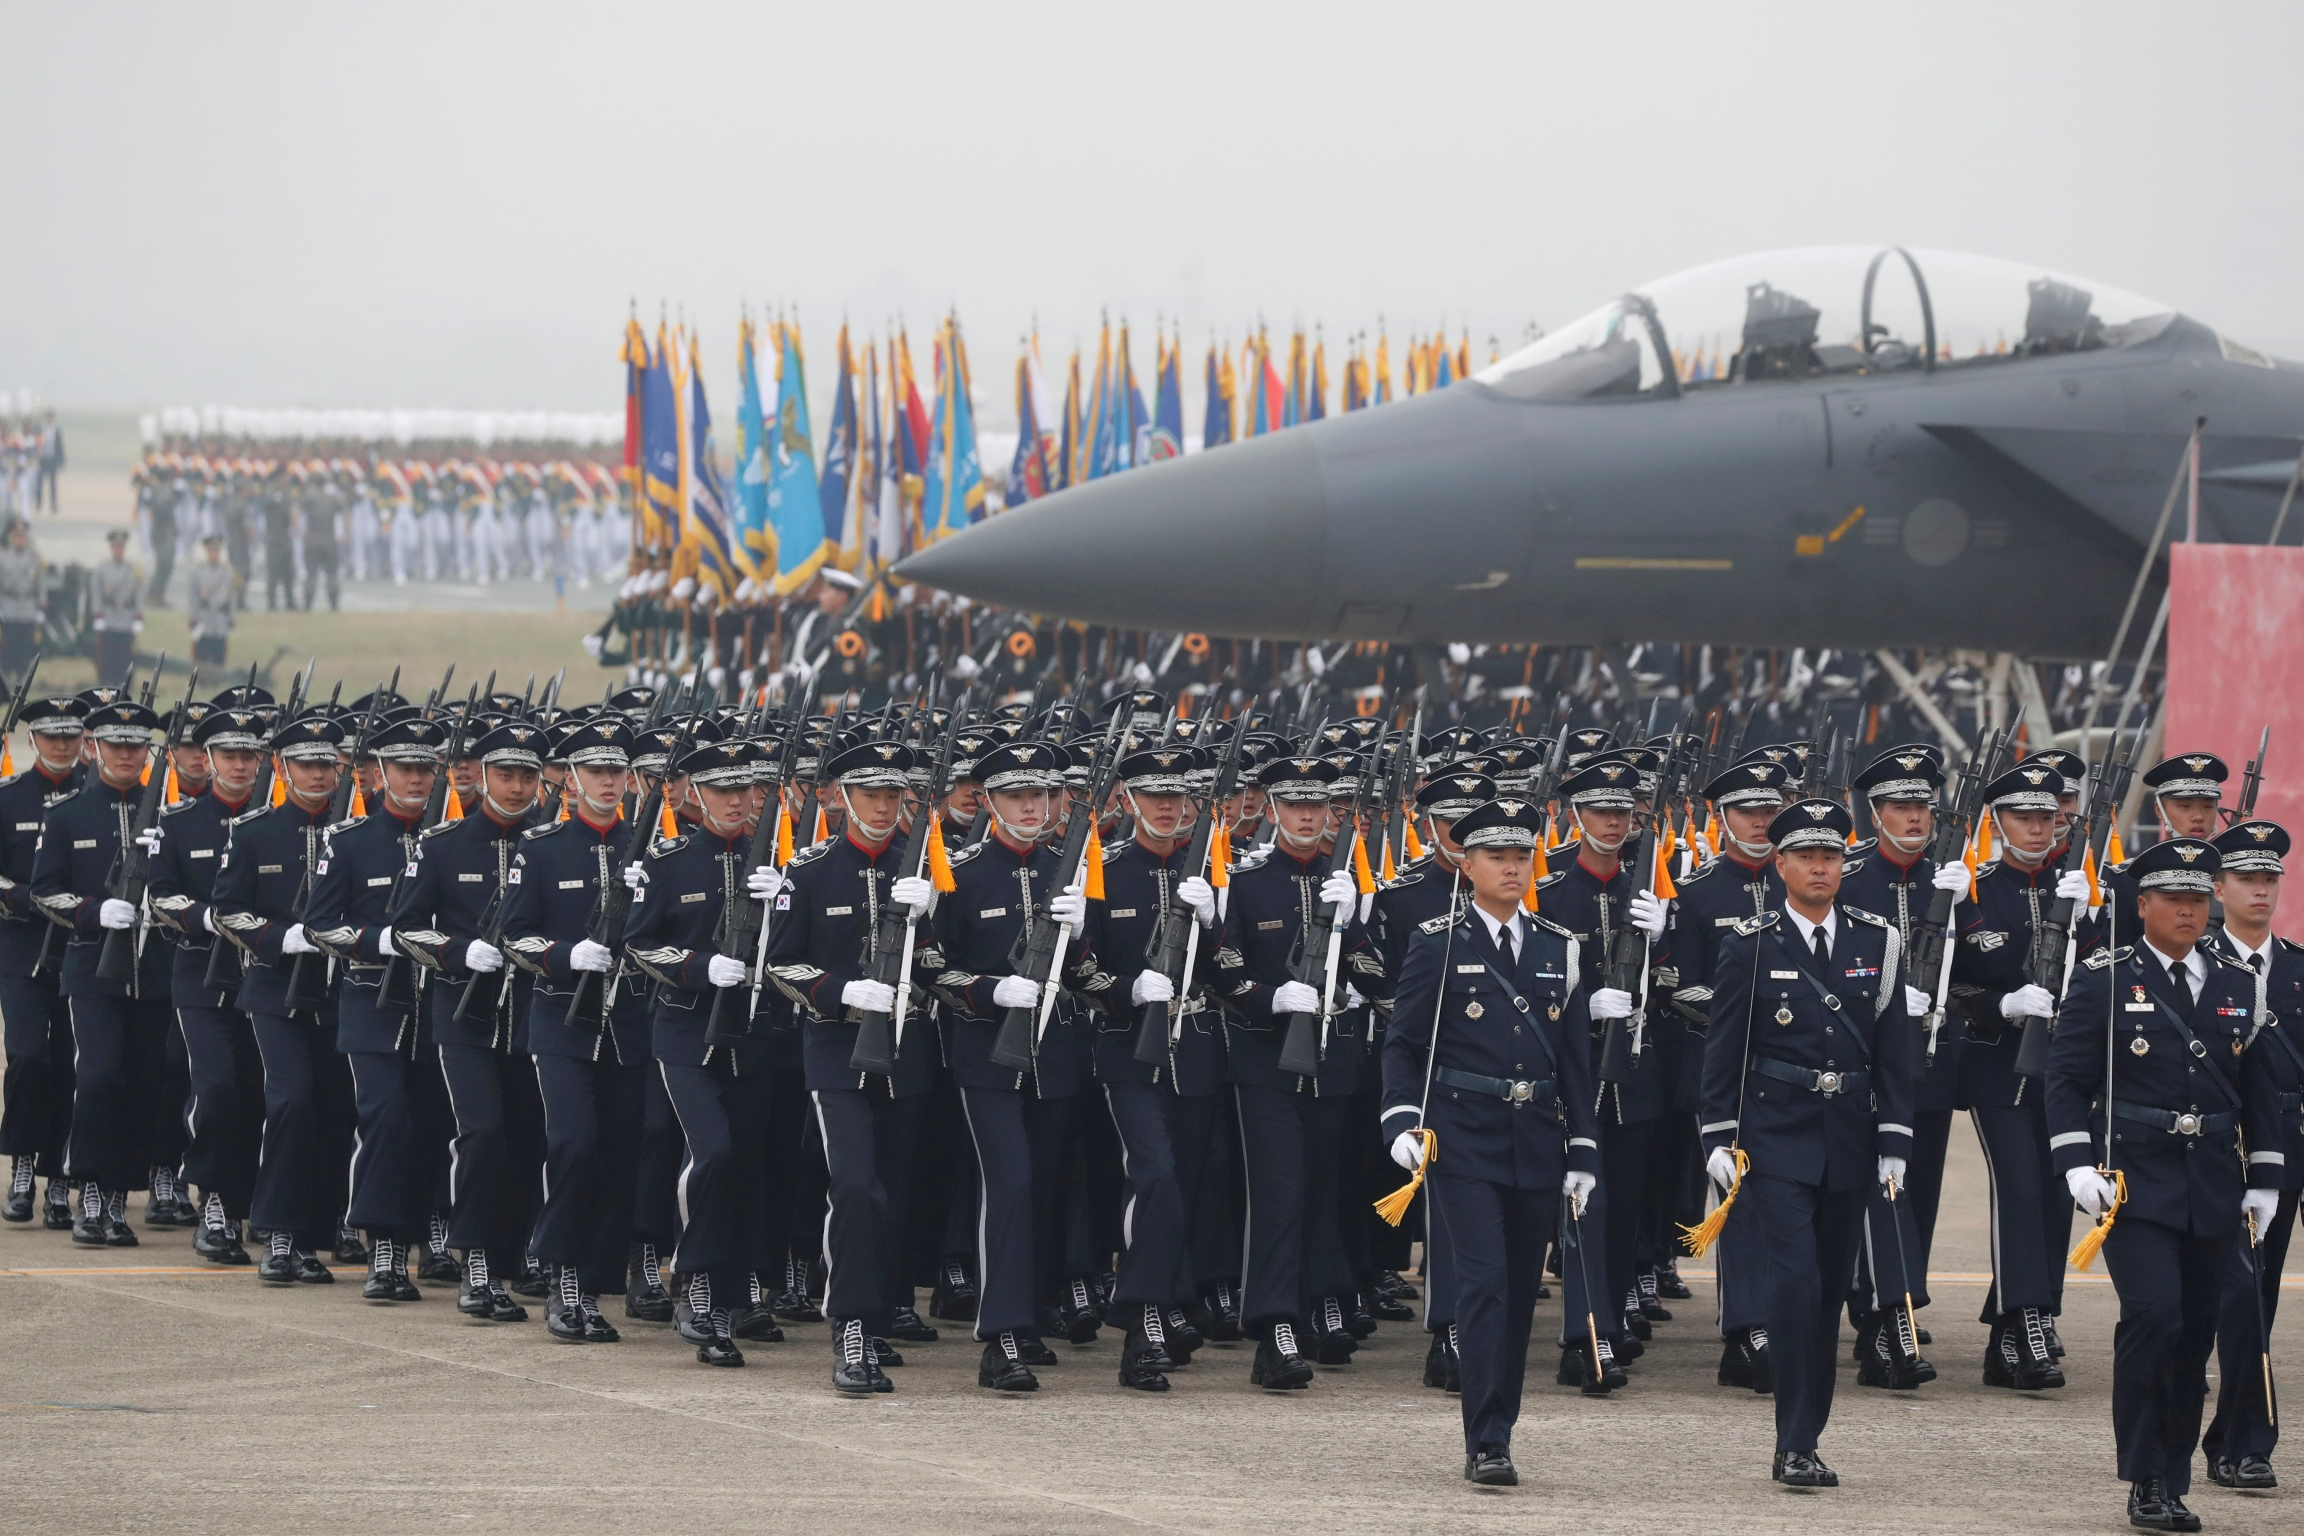 South Korean Army soldiers in black uniforms participate in a ceremony to mark the 71st anniversary of Armed Forces Day near military plane